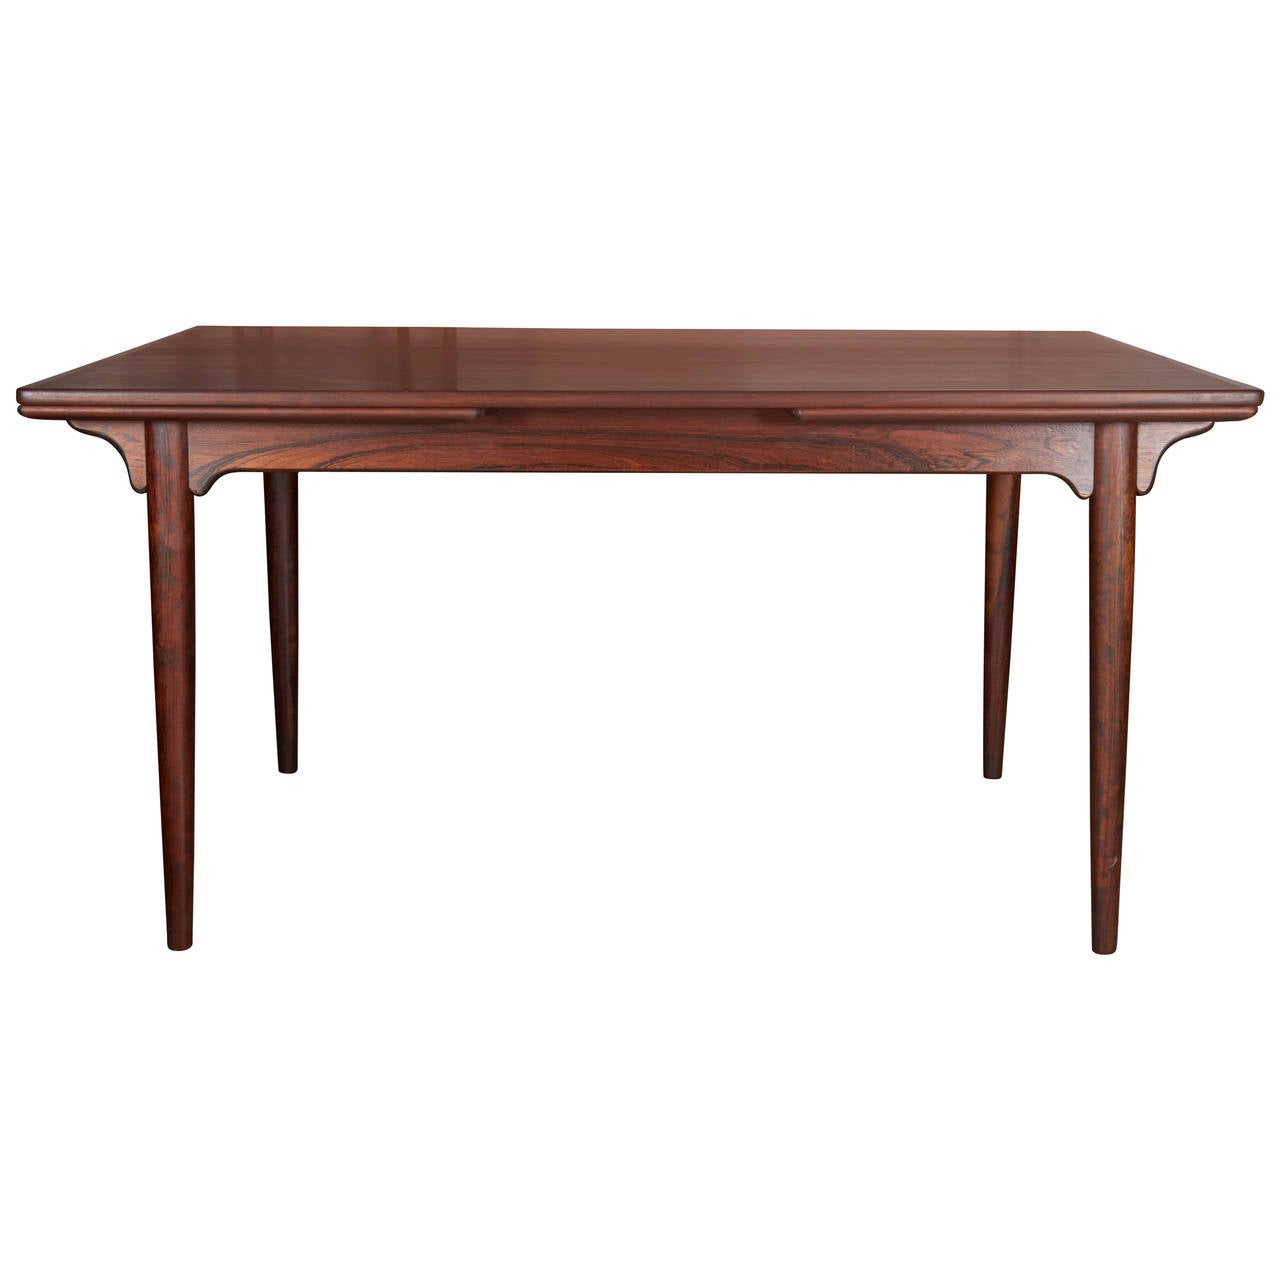 Expandable dining table by omann jun rosewood at 1stdibs for Expandable dining table